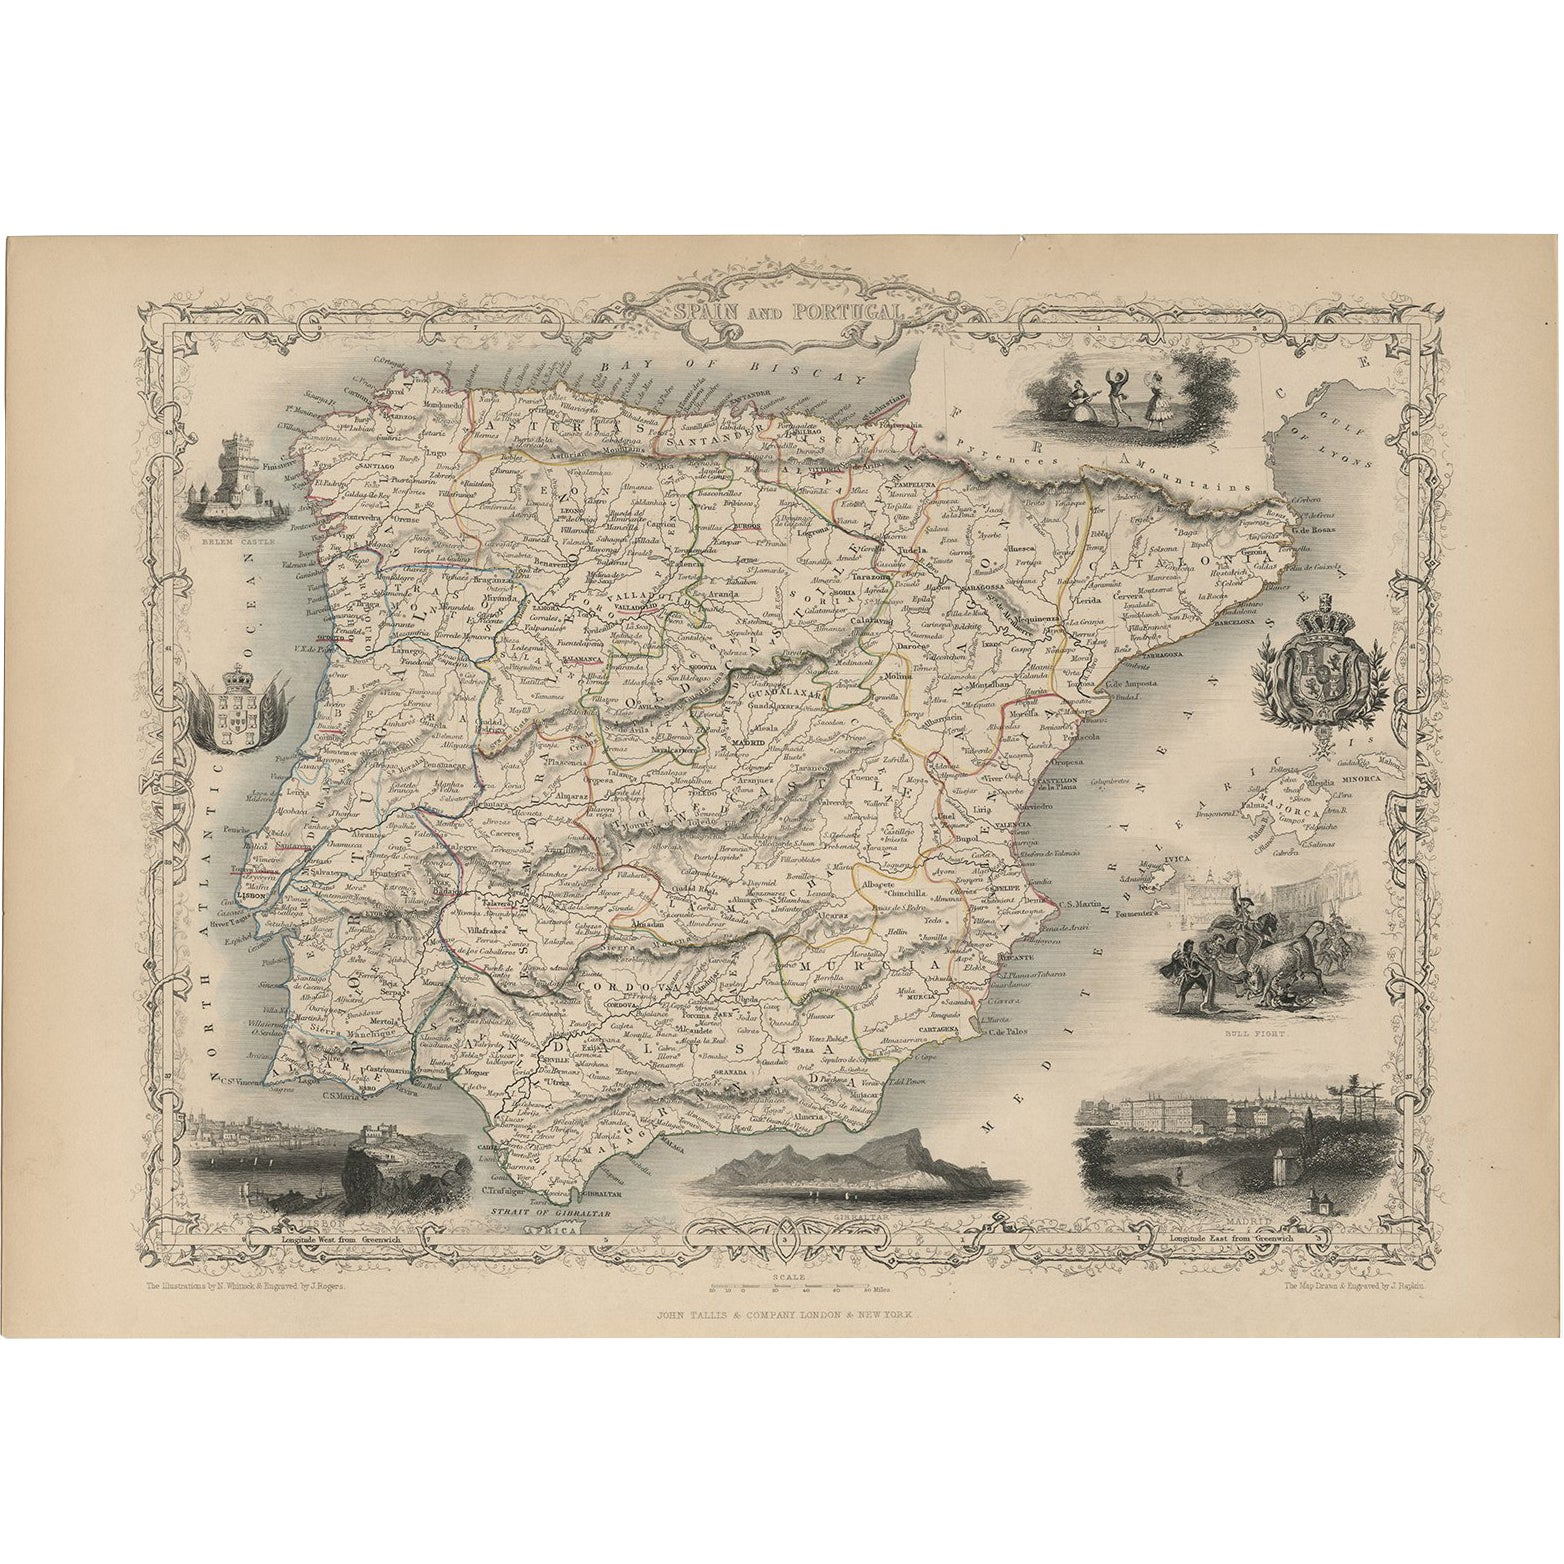 Antique Map of Spain and Portugal by J. Tallis, circa 1851